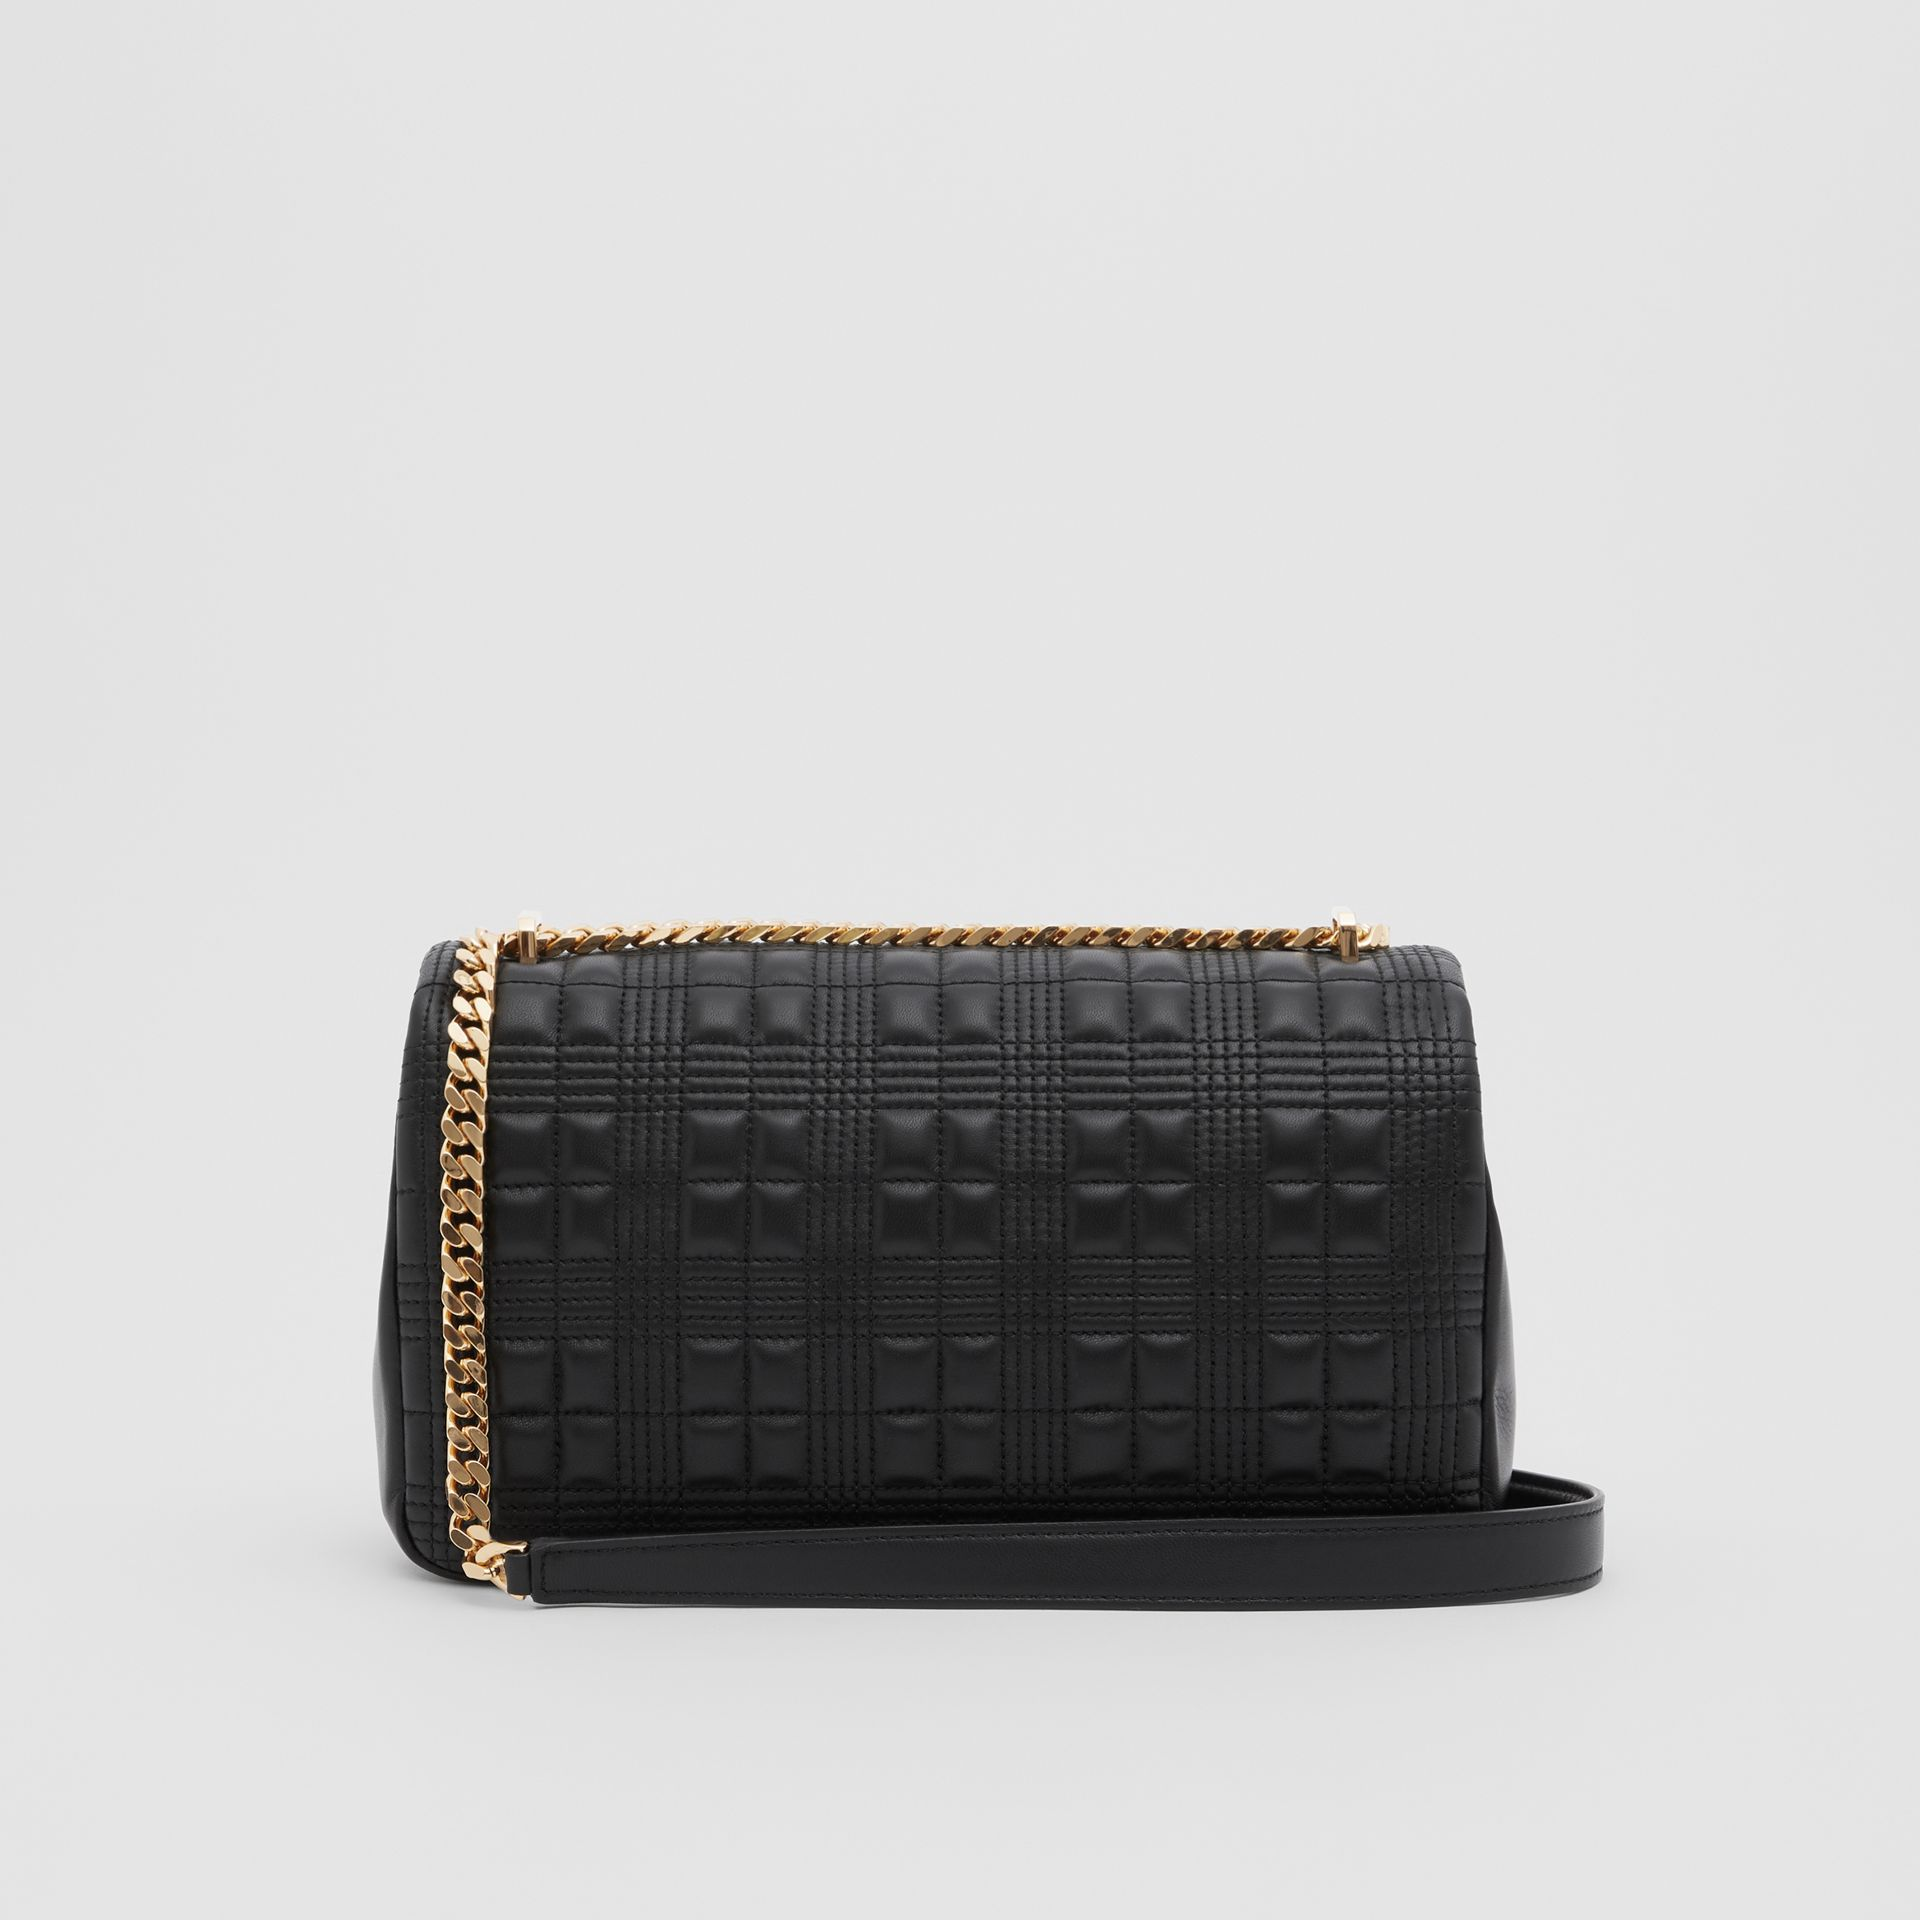 Medium Quilted Check Lambskin Lola Bag in Black - Women | Burberry United Kingdom - gallery image 5